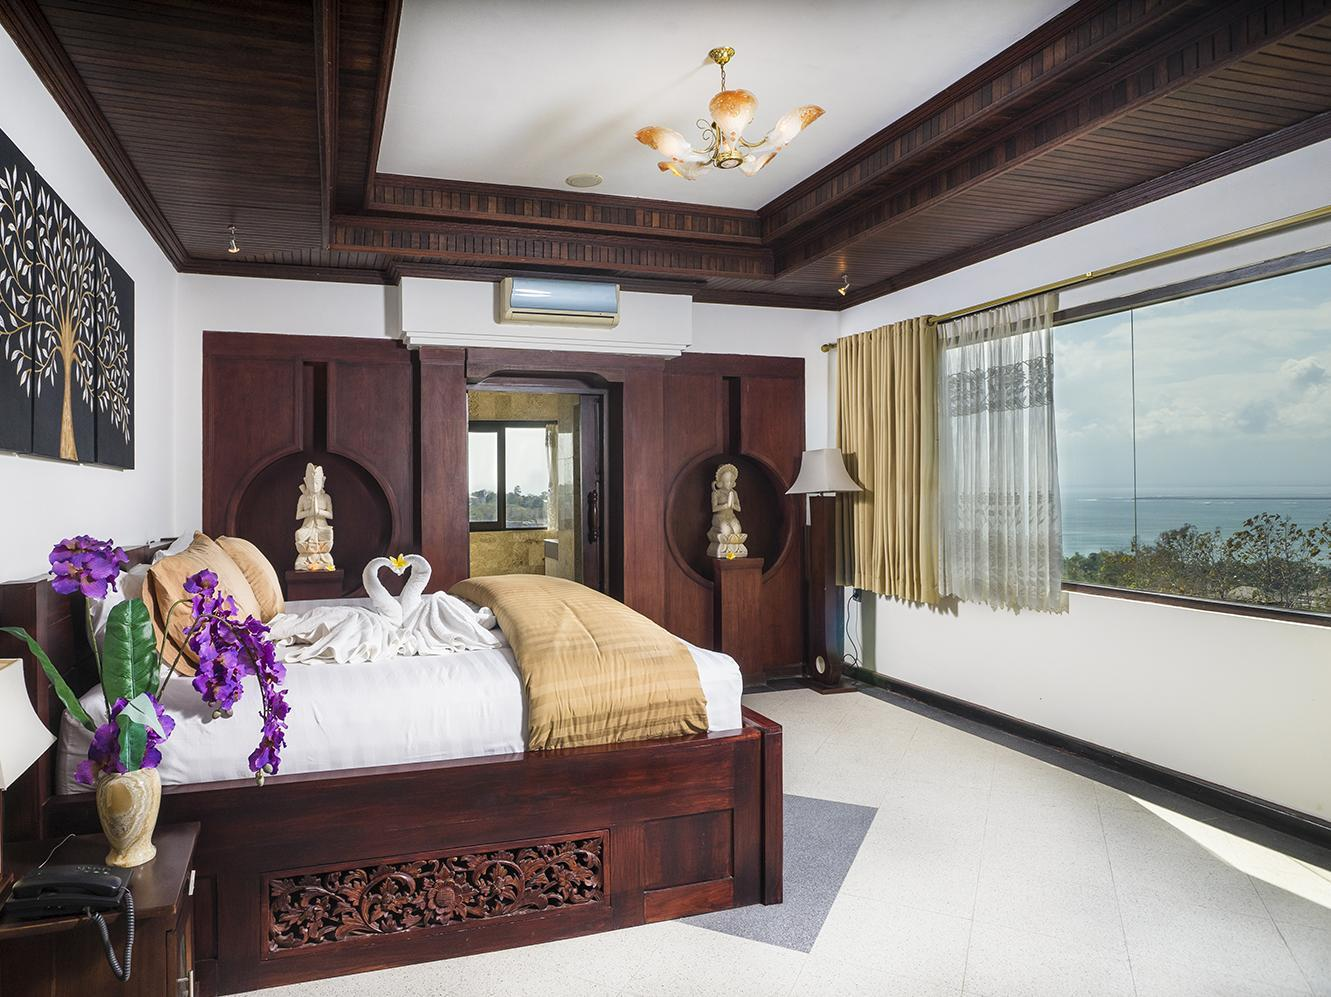 3 Princess Boutique Hotel And Spa